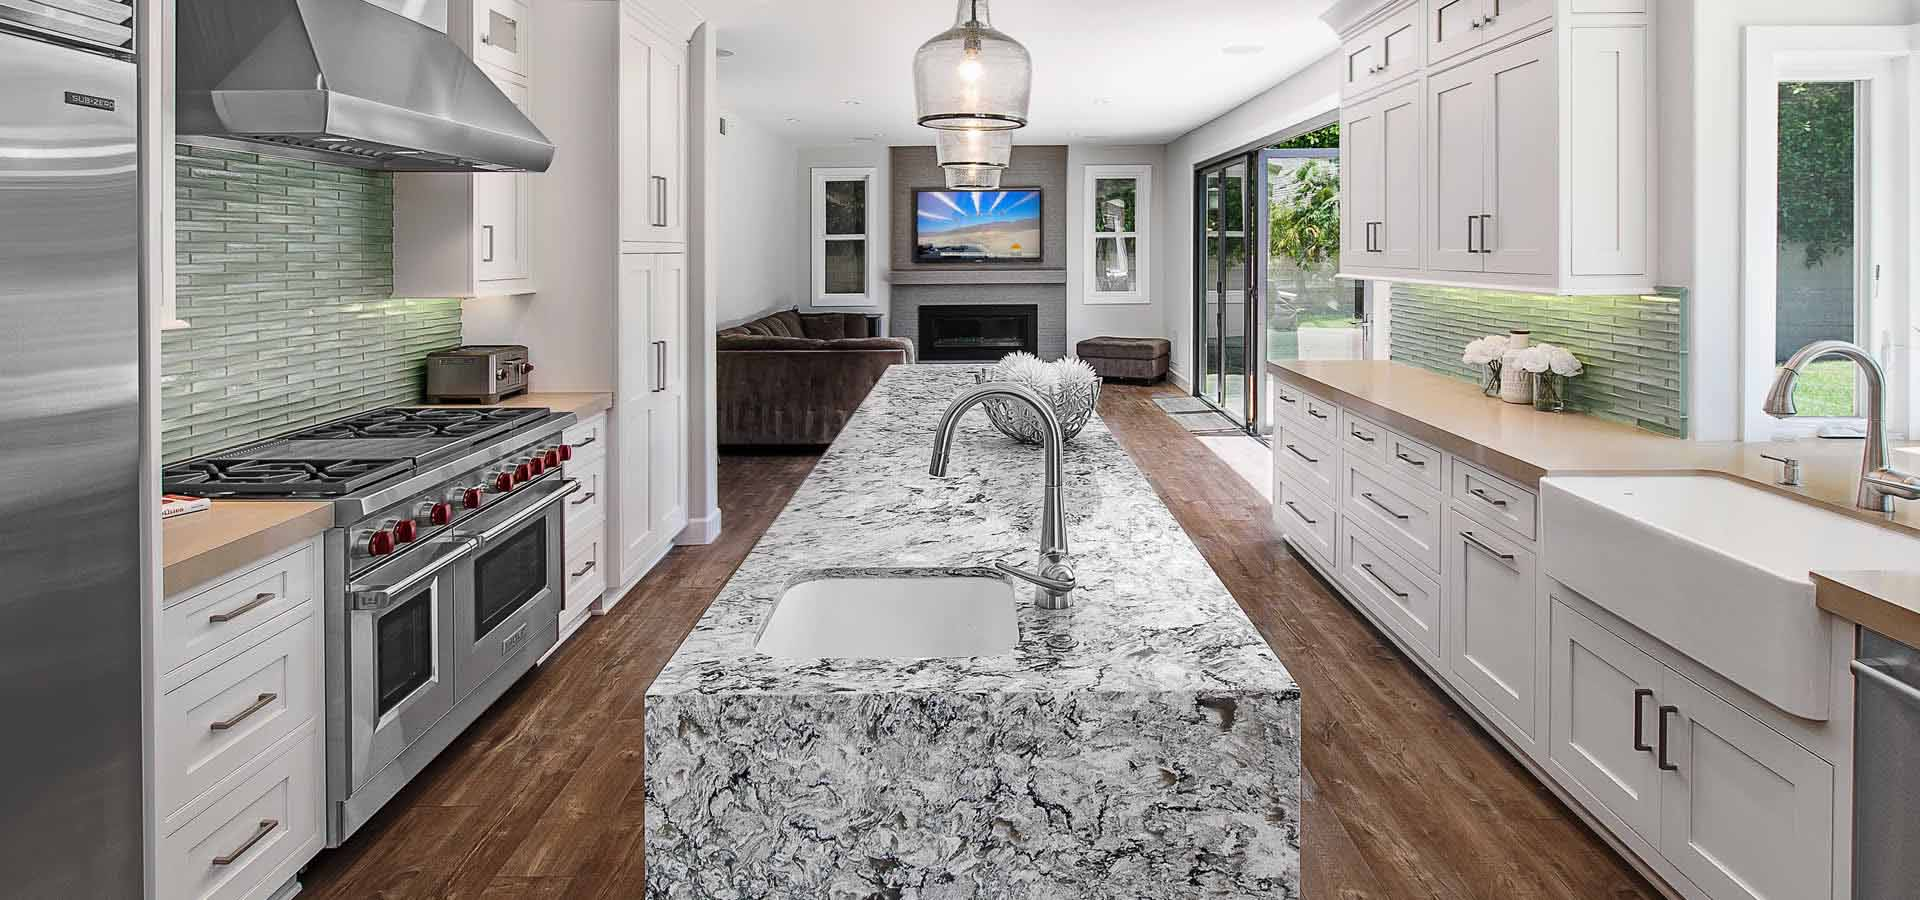 Full kitchen remodeling in Capo by Preferred Kitchen and Bath